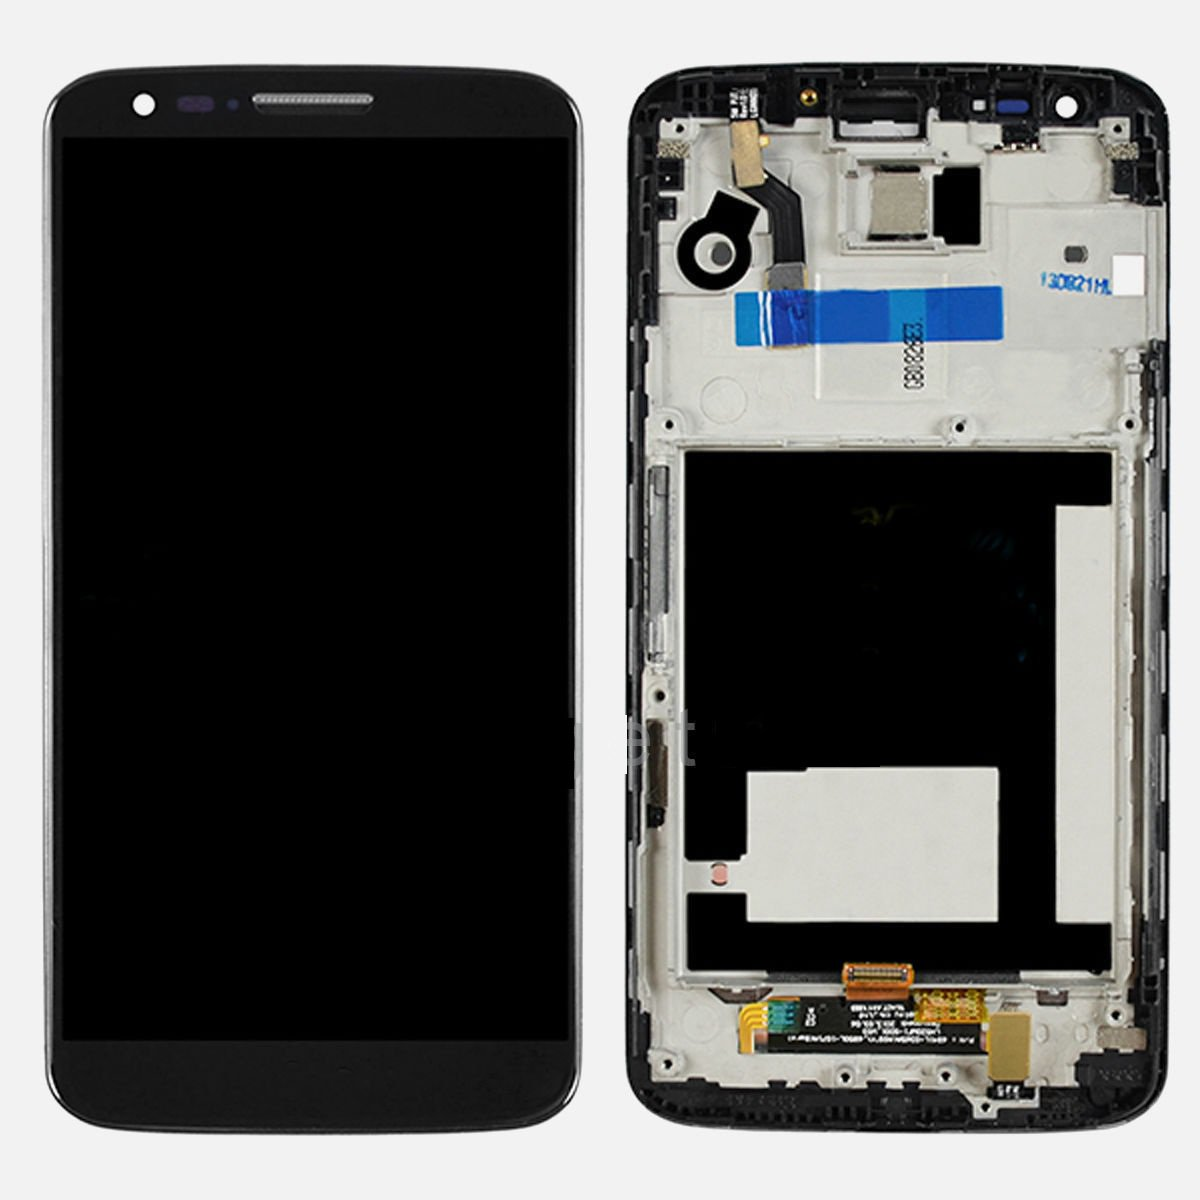 New OEM LG G2 D800 D801 LCD Screen Display Digitizer Touch Glass + Frame Bezel Assembly